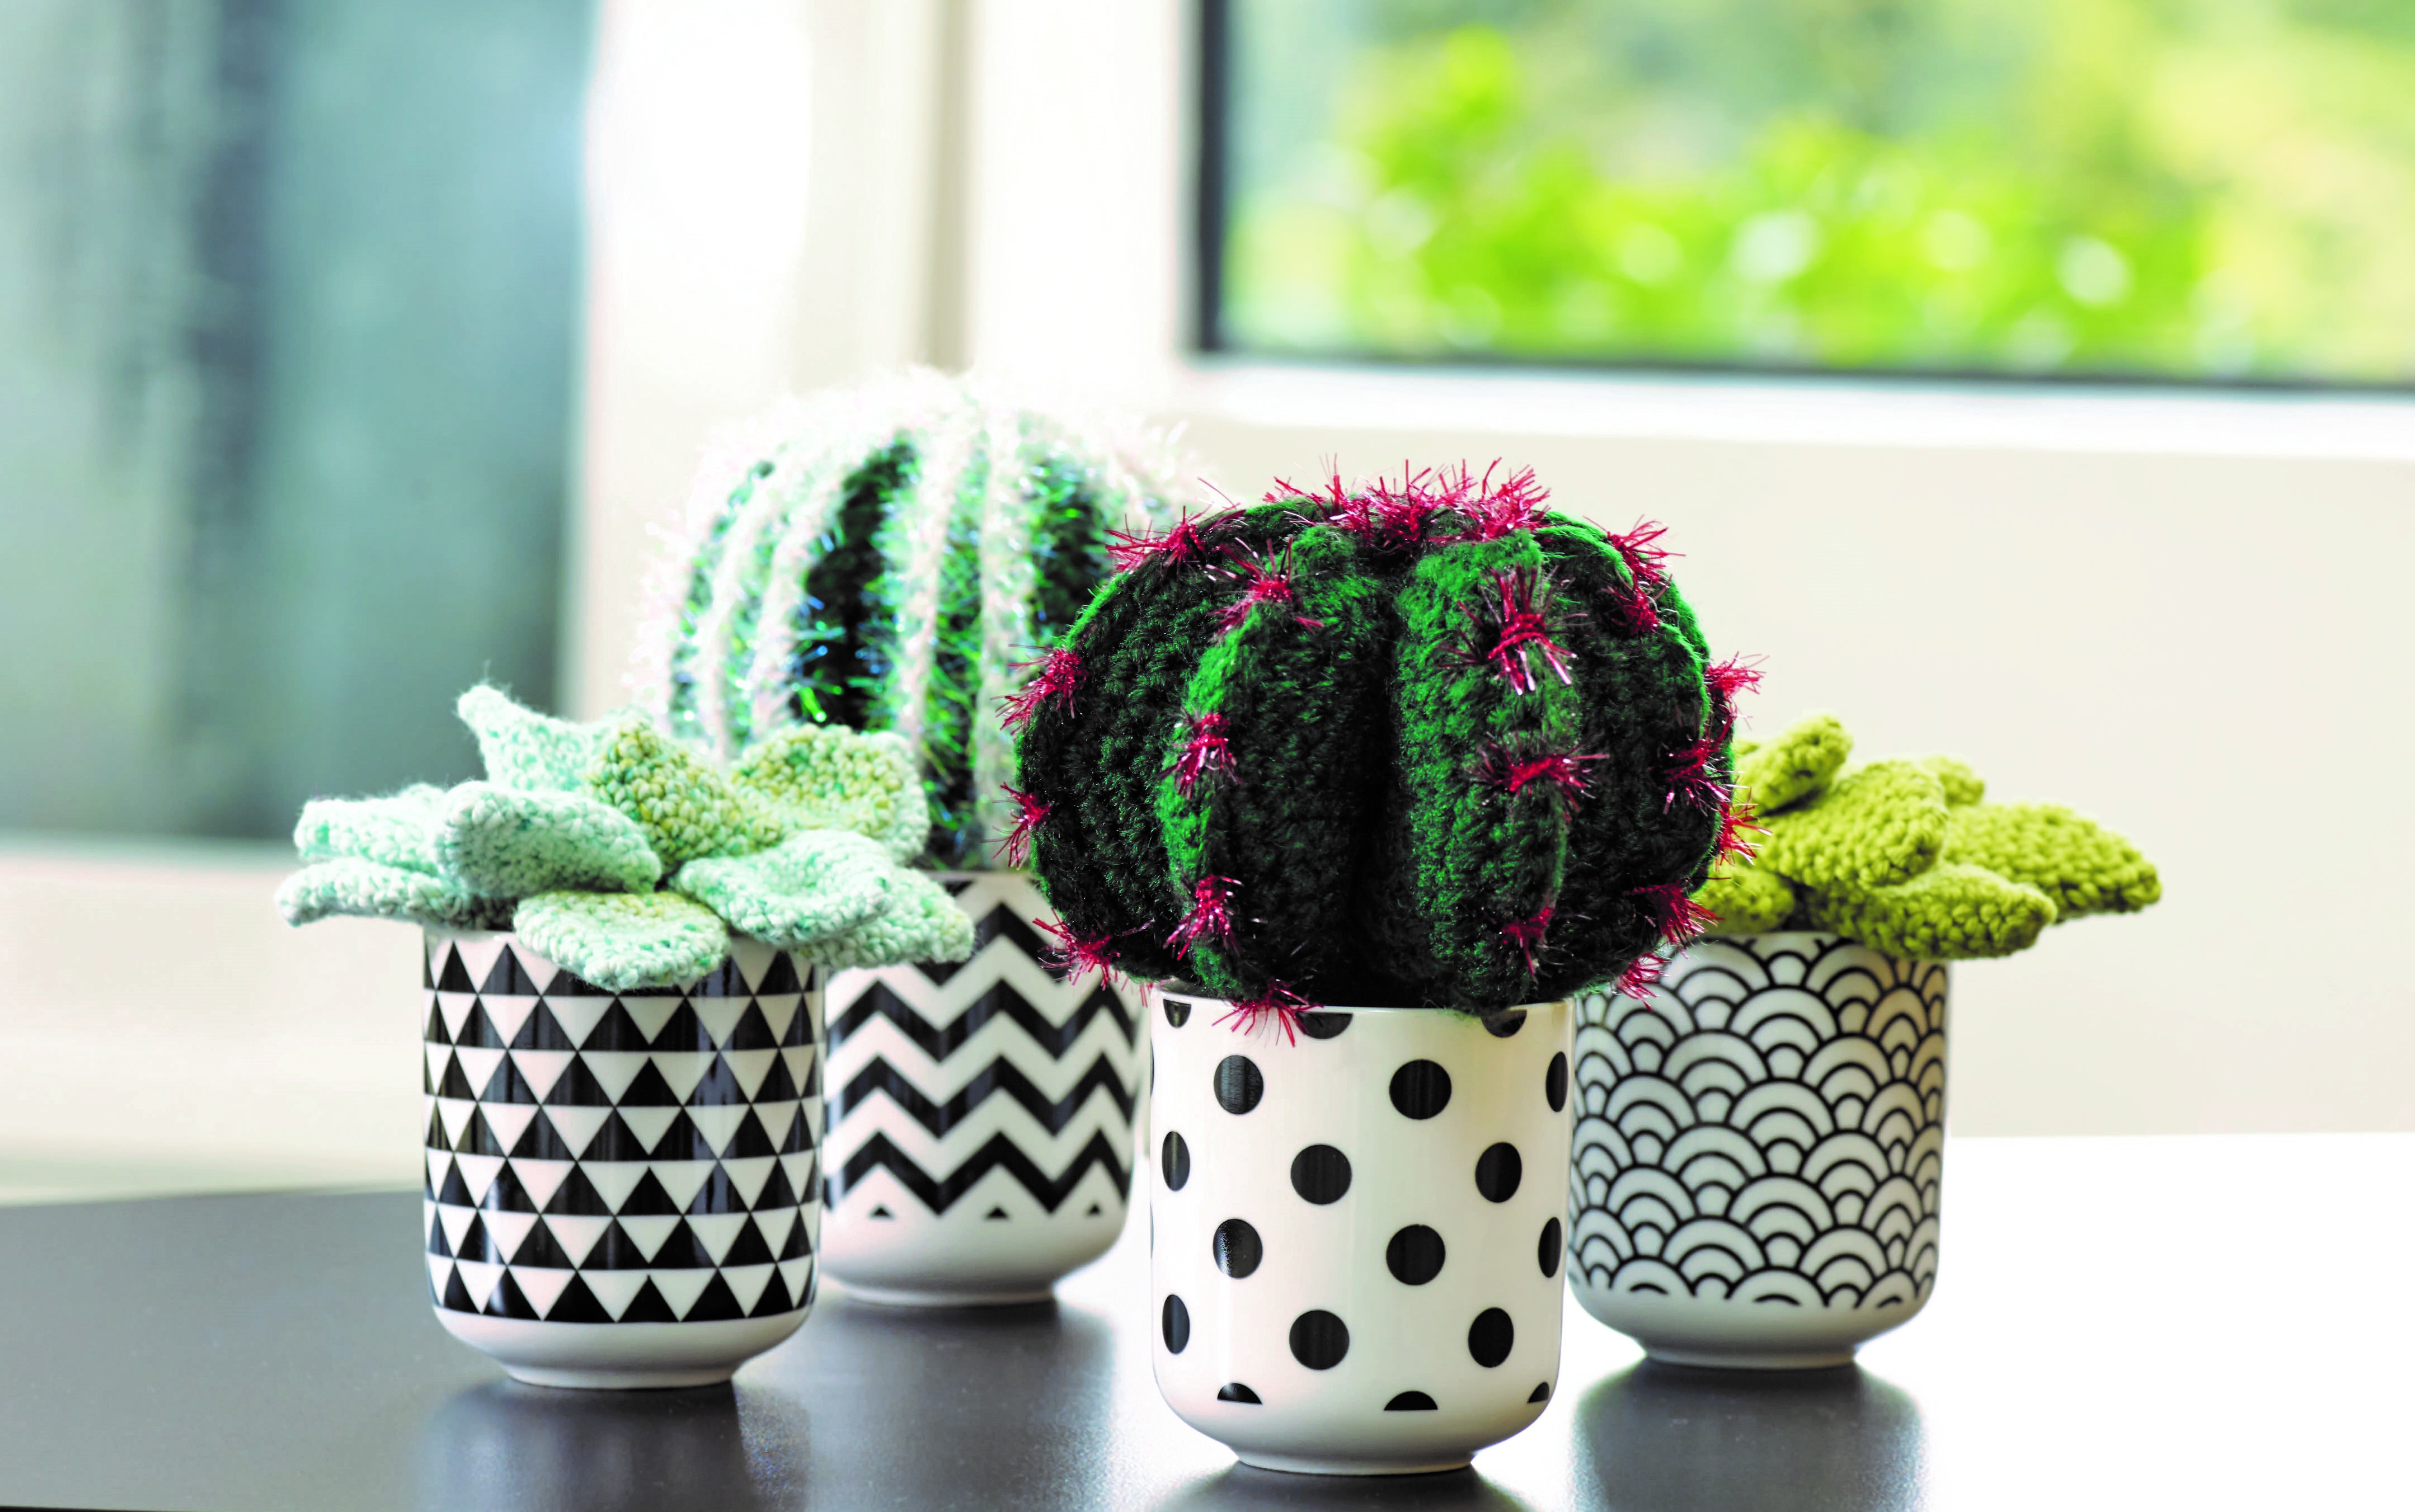 Crochet cute mexican cactus collection by LilSy-workshop on DeviantArt | 2703x4316